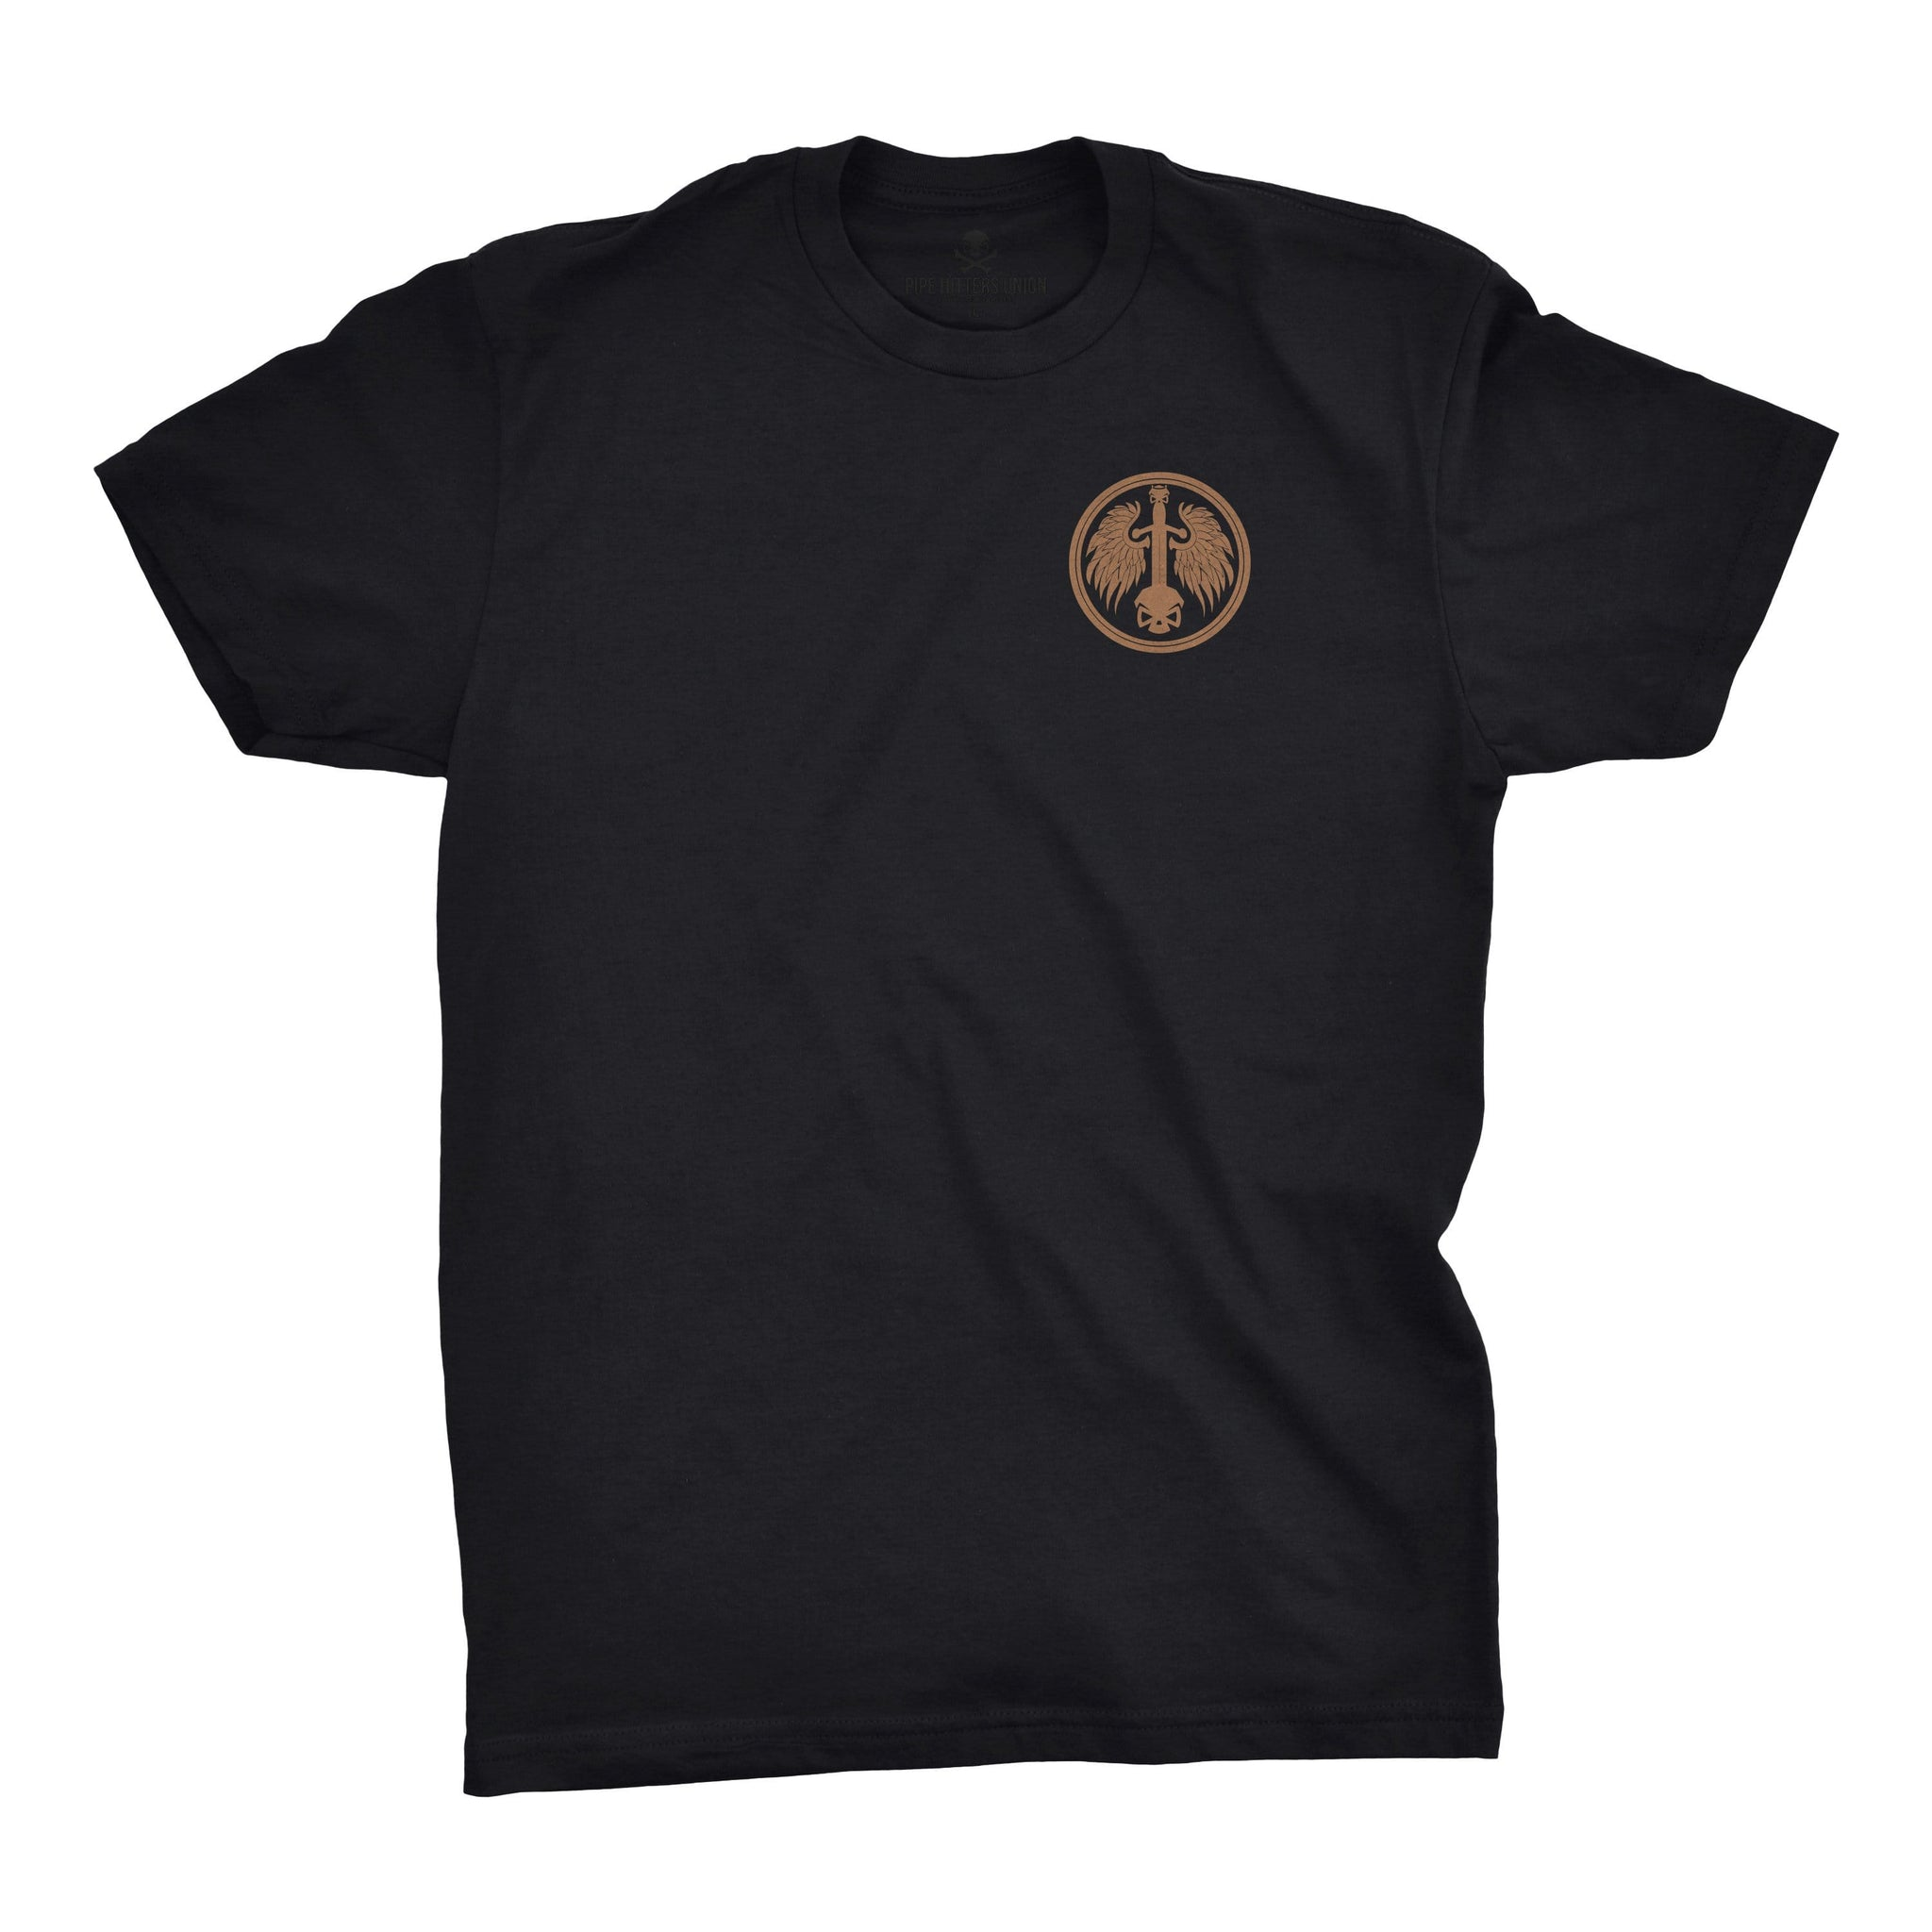 PHUMC Guardians Chapter Tee - Black - T-Shirts - Pipe Hitters Union